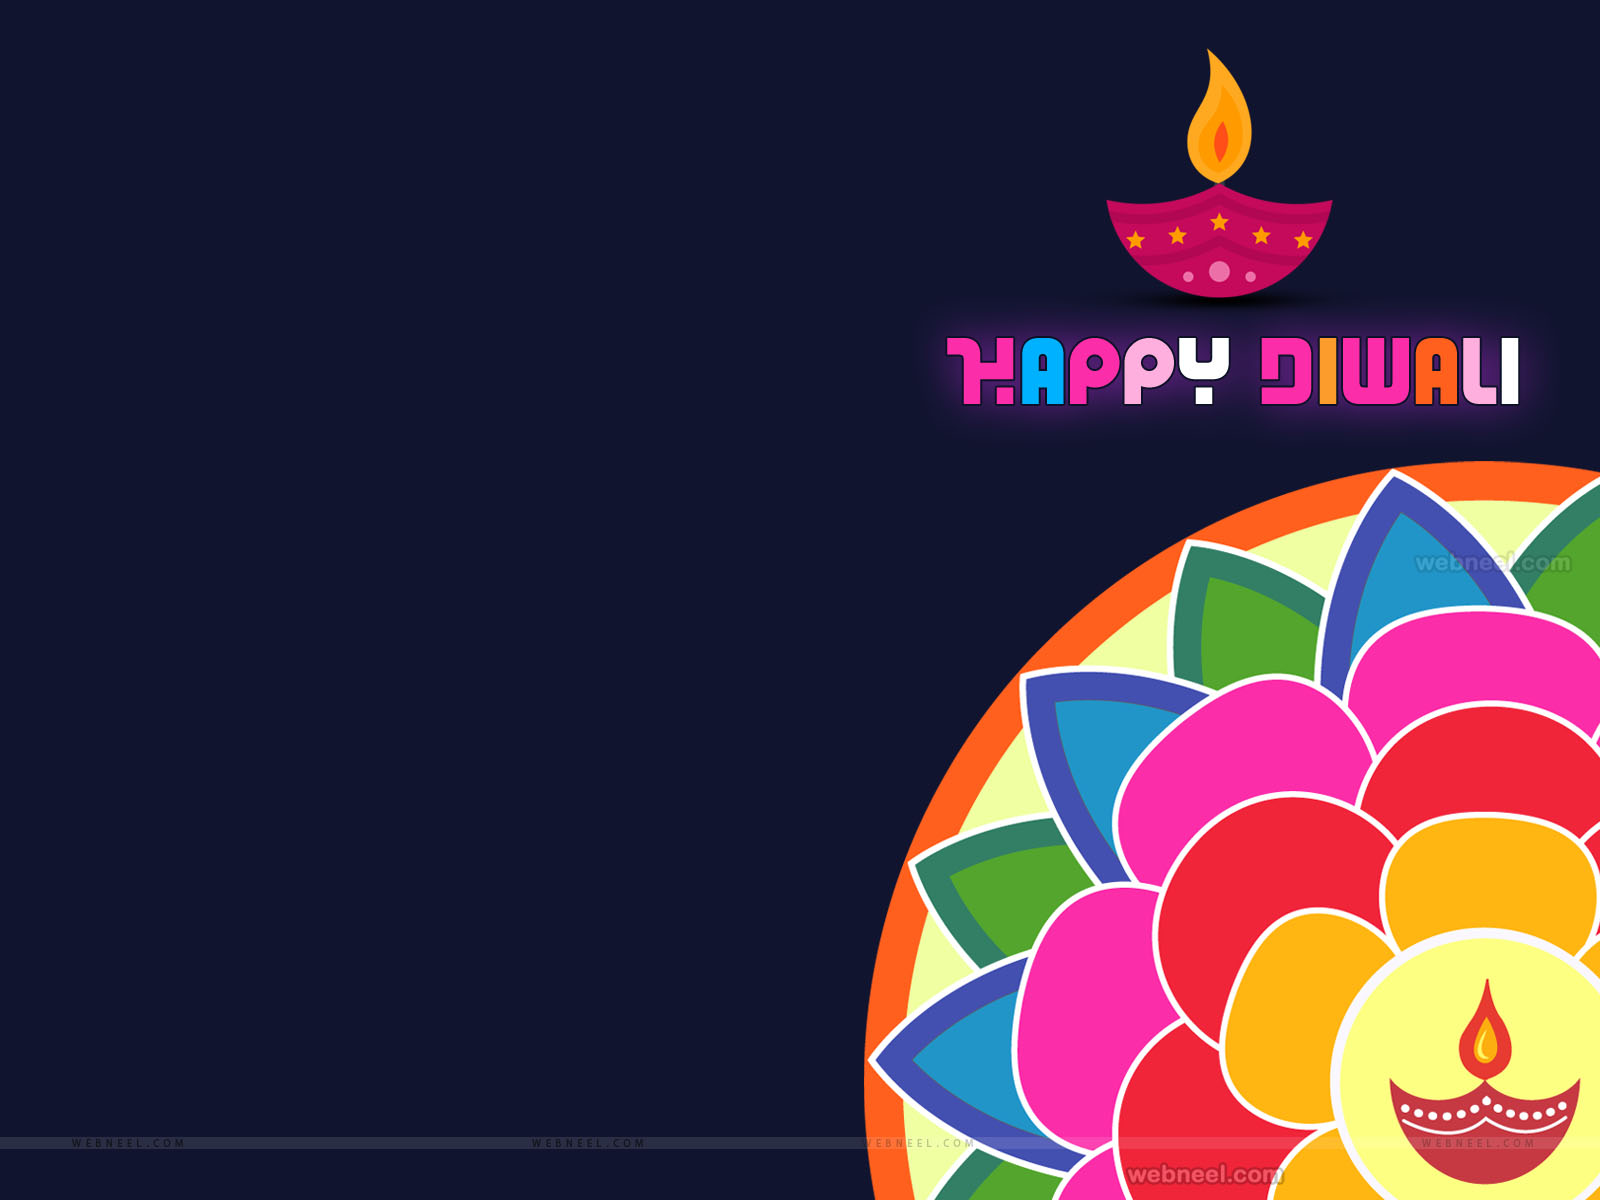 colorful diwali wallpaper design webneel